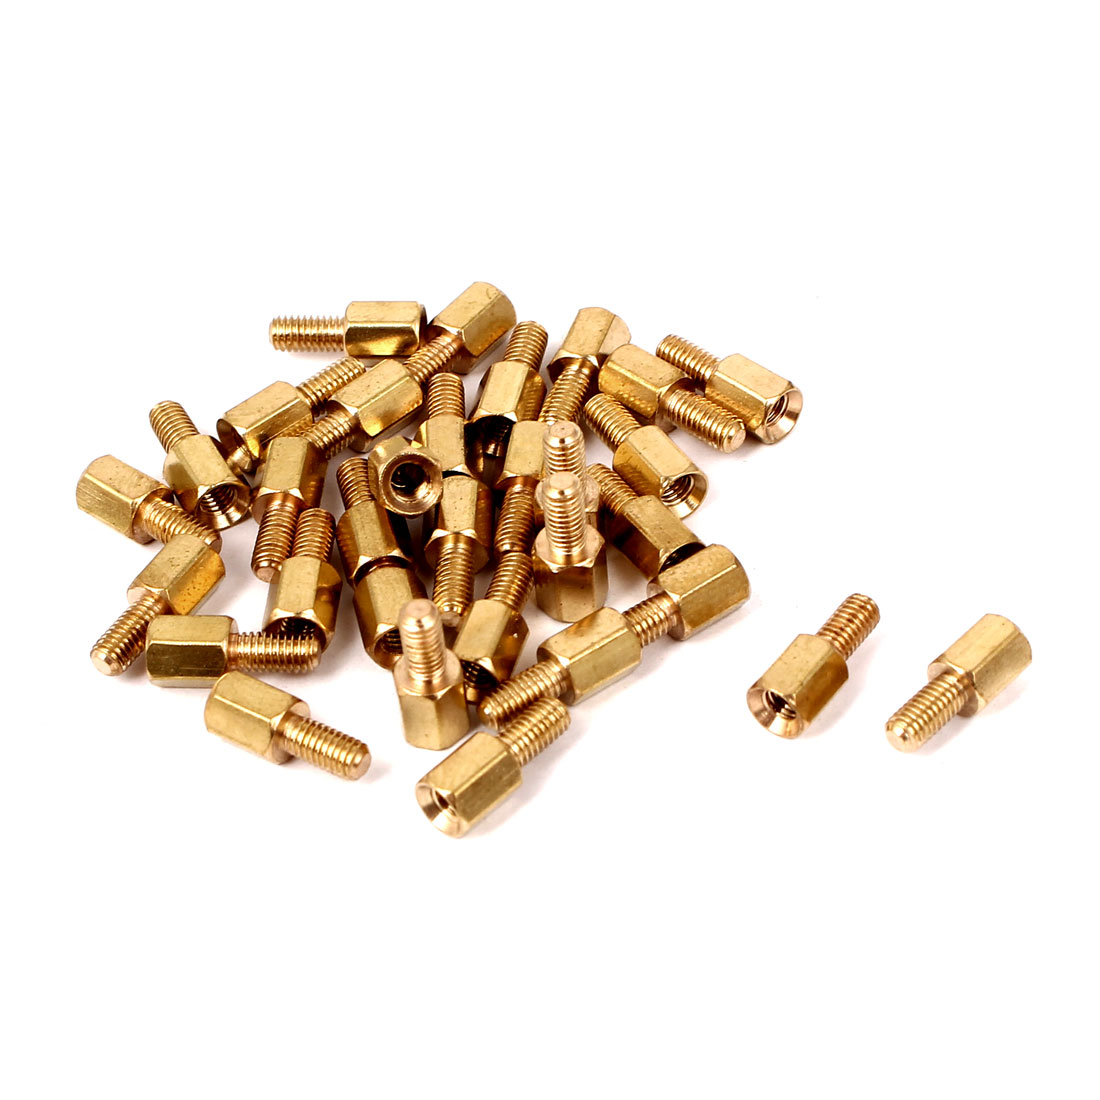 M3 Male/Female Threaded Brass Hexagonal PCB Spacer Standoff Support 6mm+6mm 30pcs